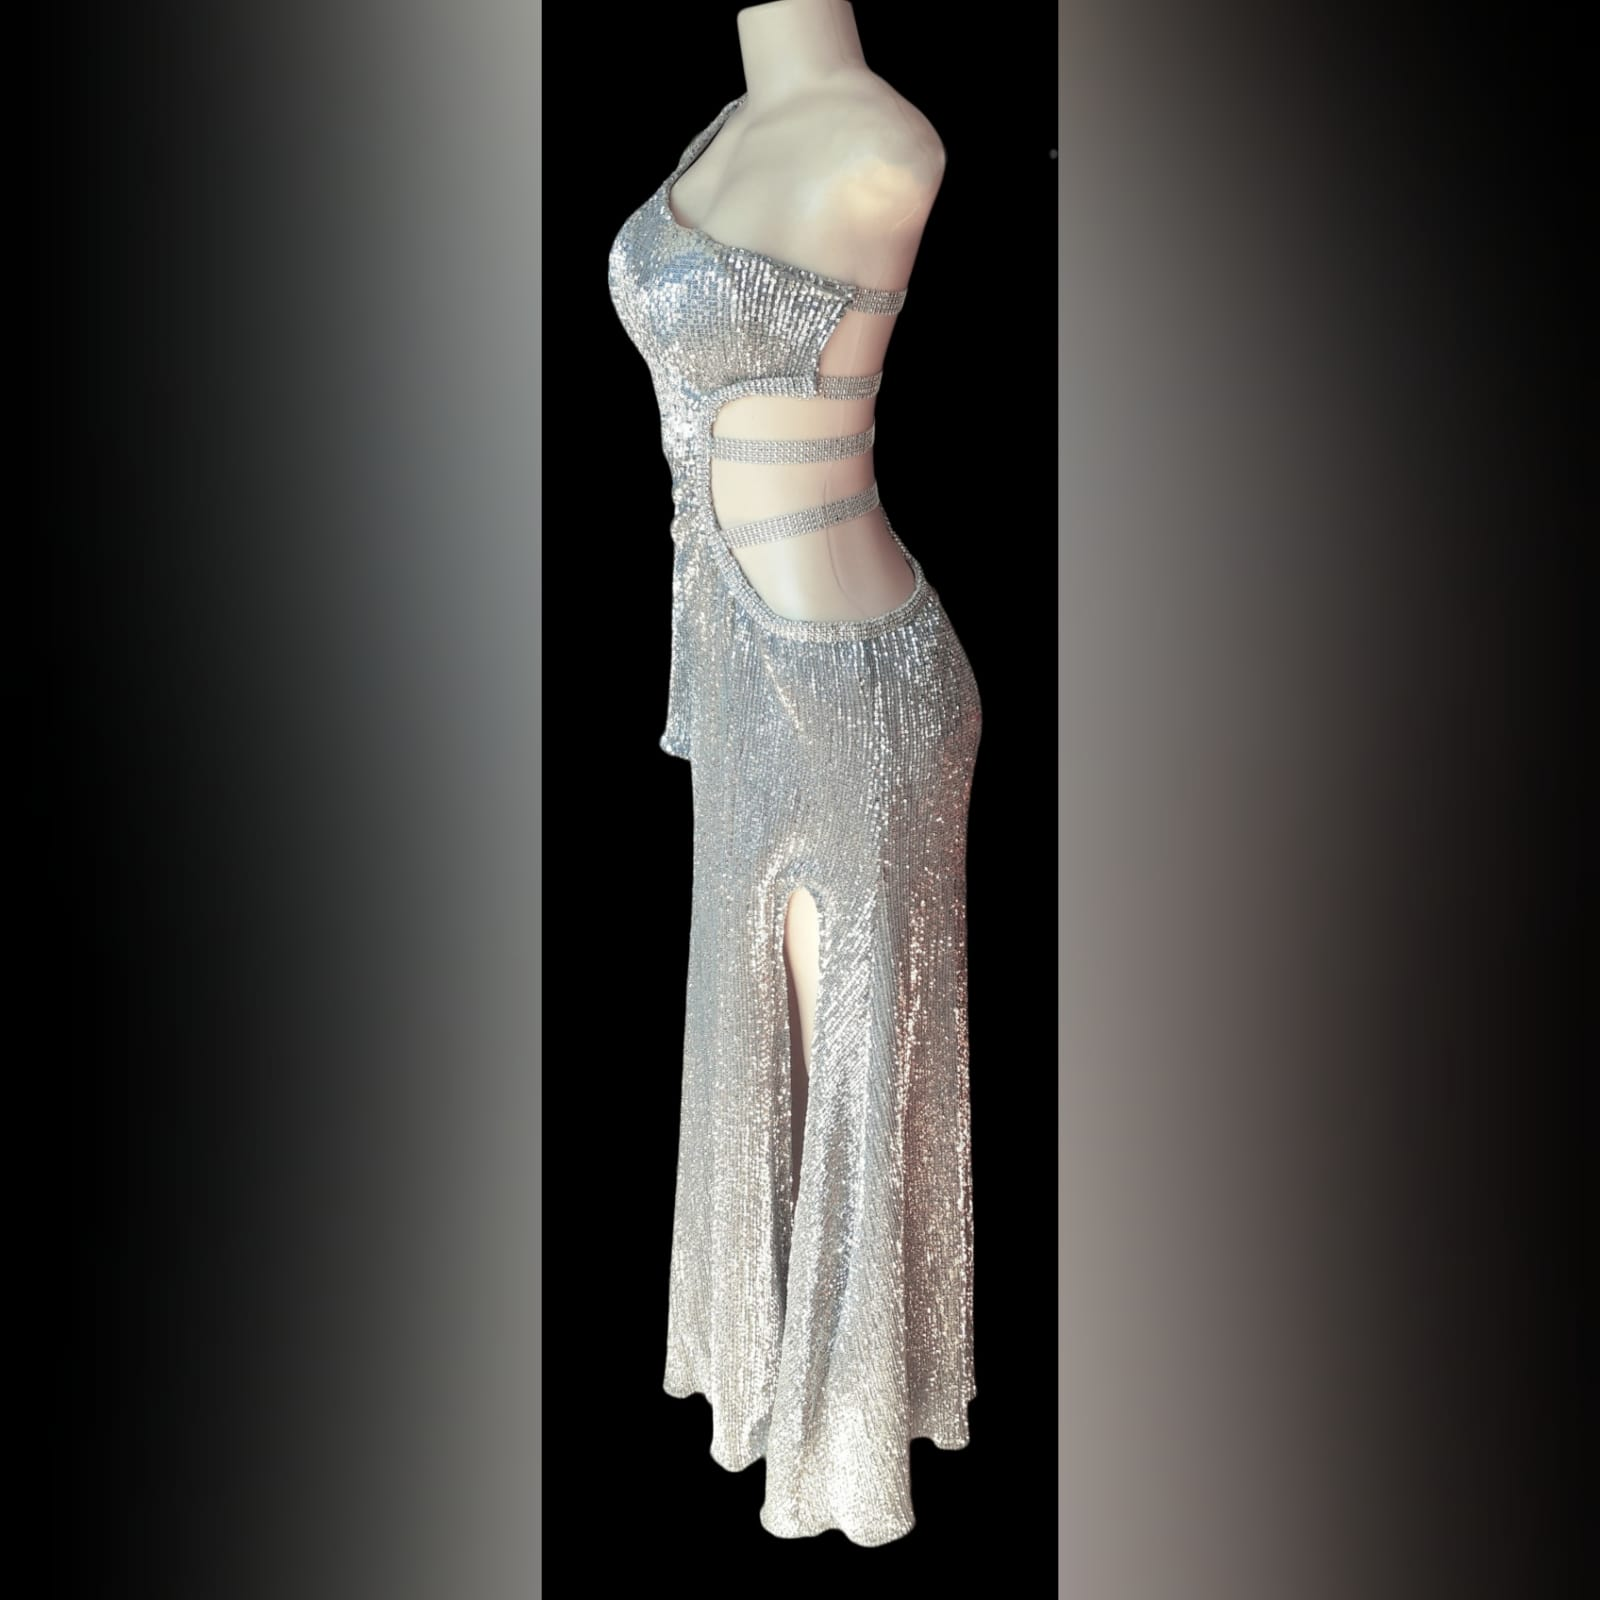 Silver sequins long sexy end year party dress 5 silver sequins long sexy end year party dress with side tummy and back opening detailed with straps, one sleeve and a train.